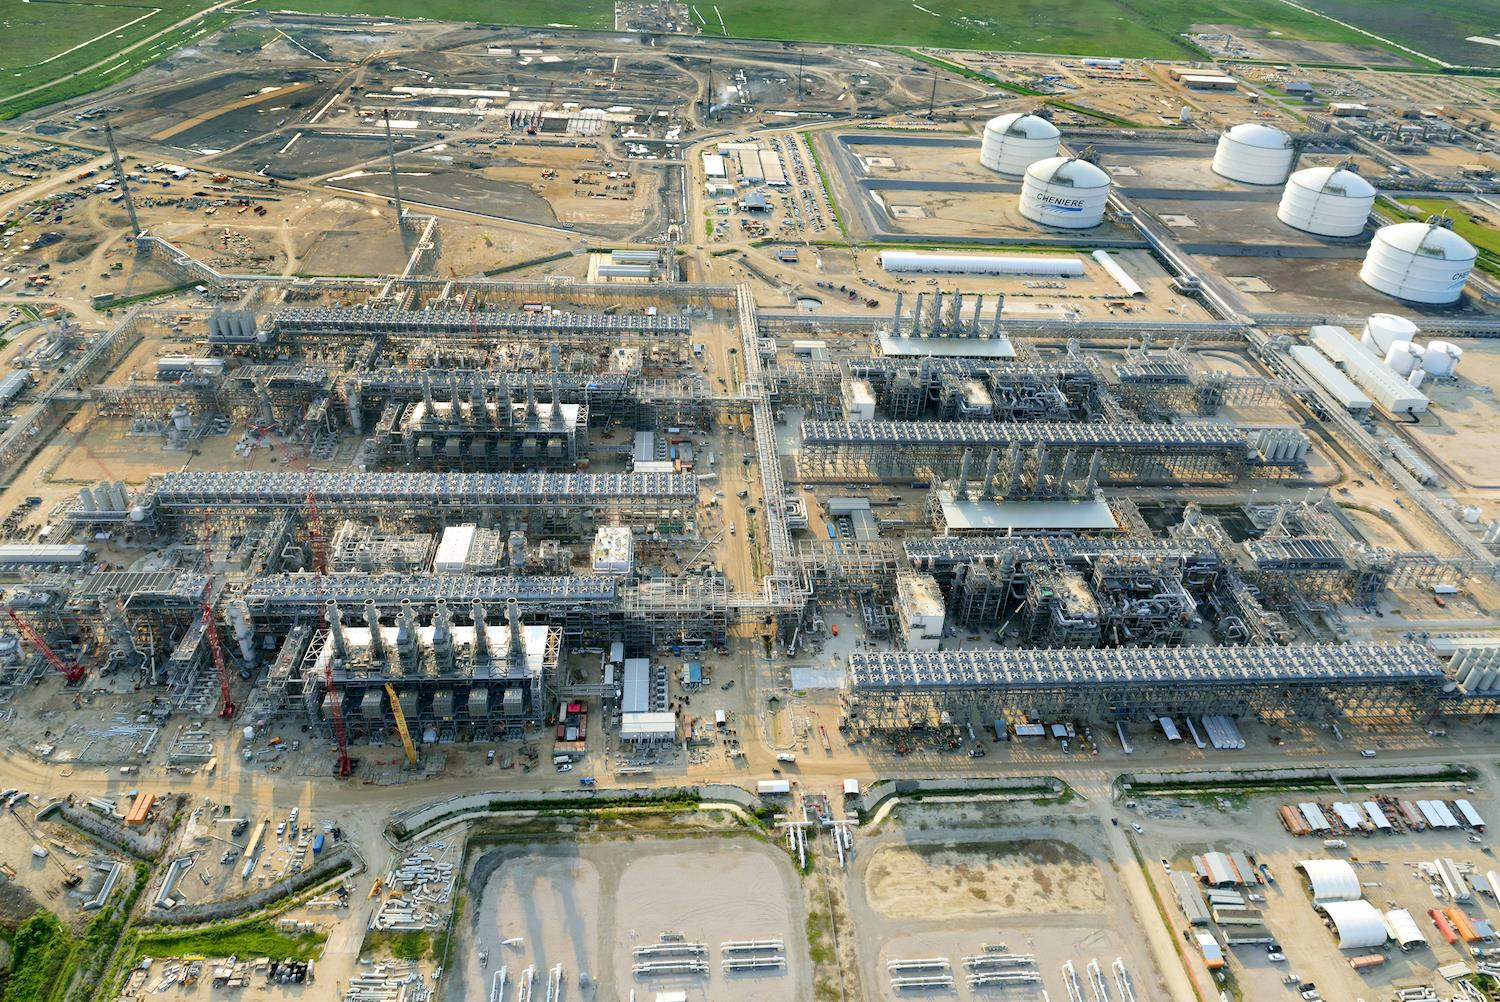 Cheniere Energy Partners is developing a sixth processing unit, Train 6, at its Sabine Pass complex in Louisiana.